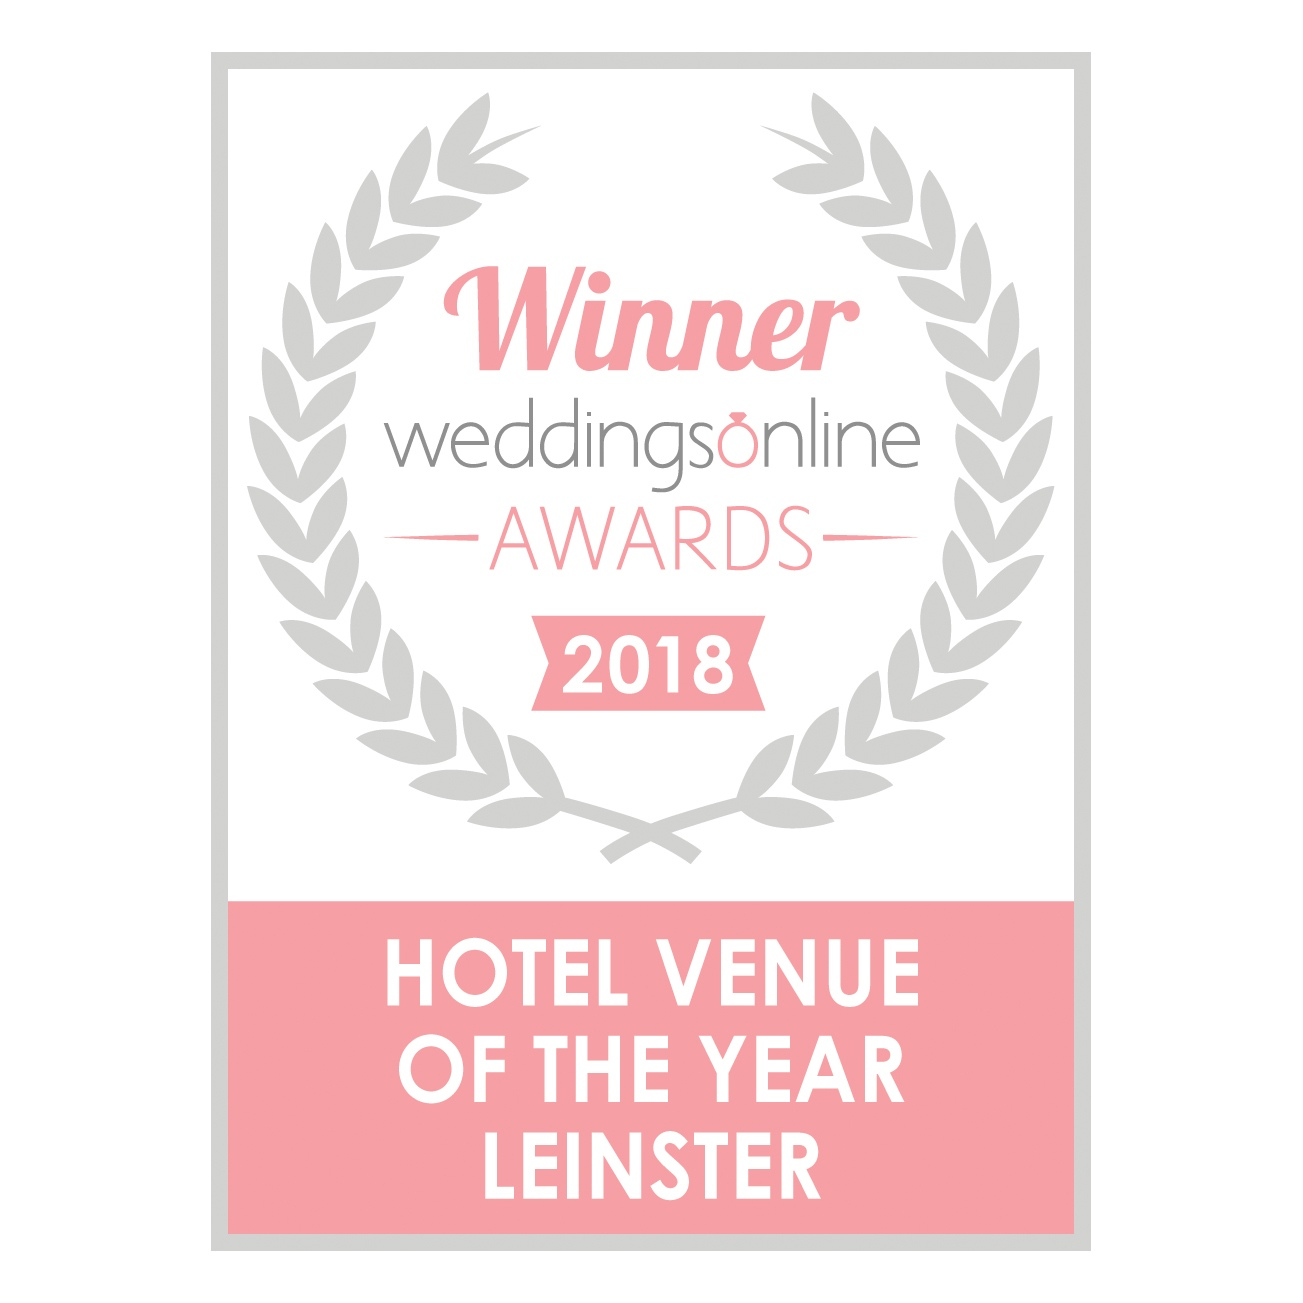 hotel venue of the year leinster 2018 badge jpg